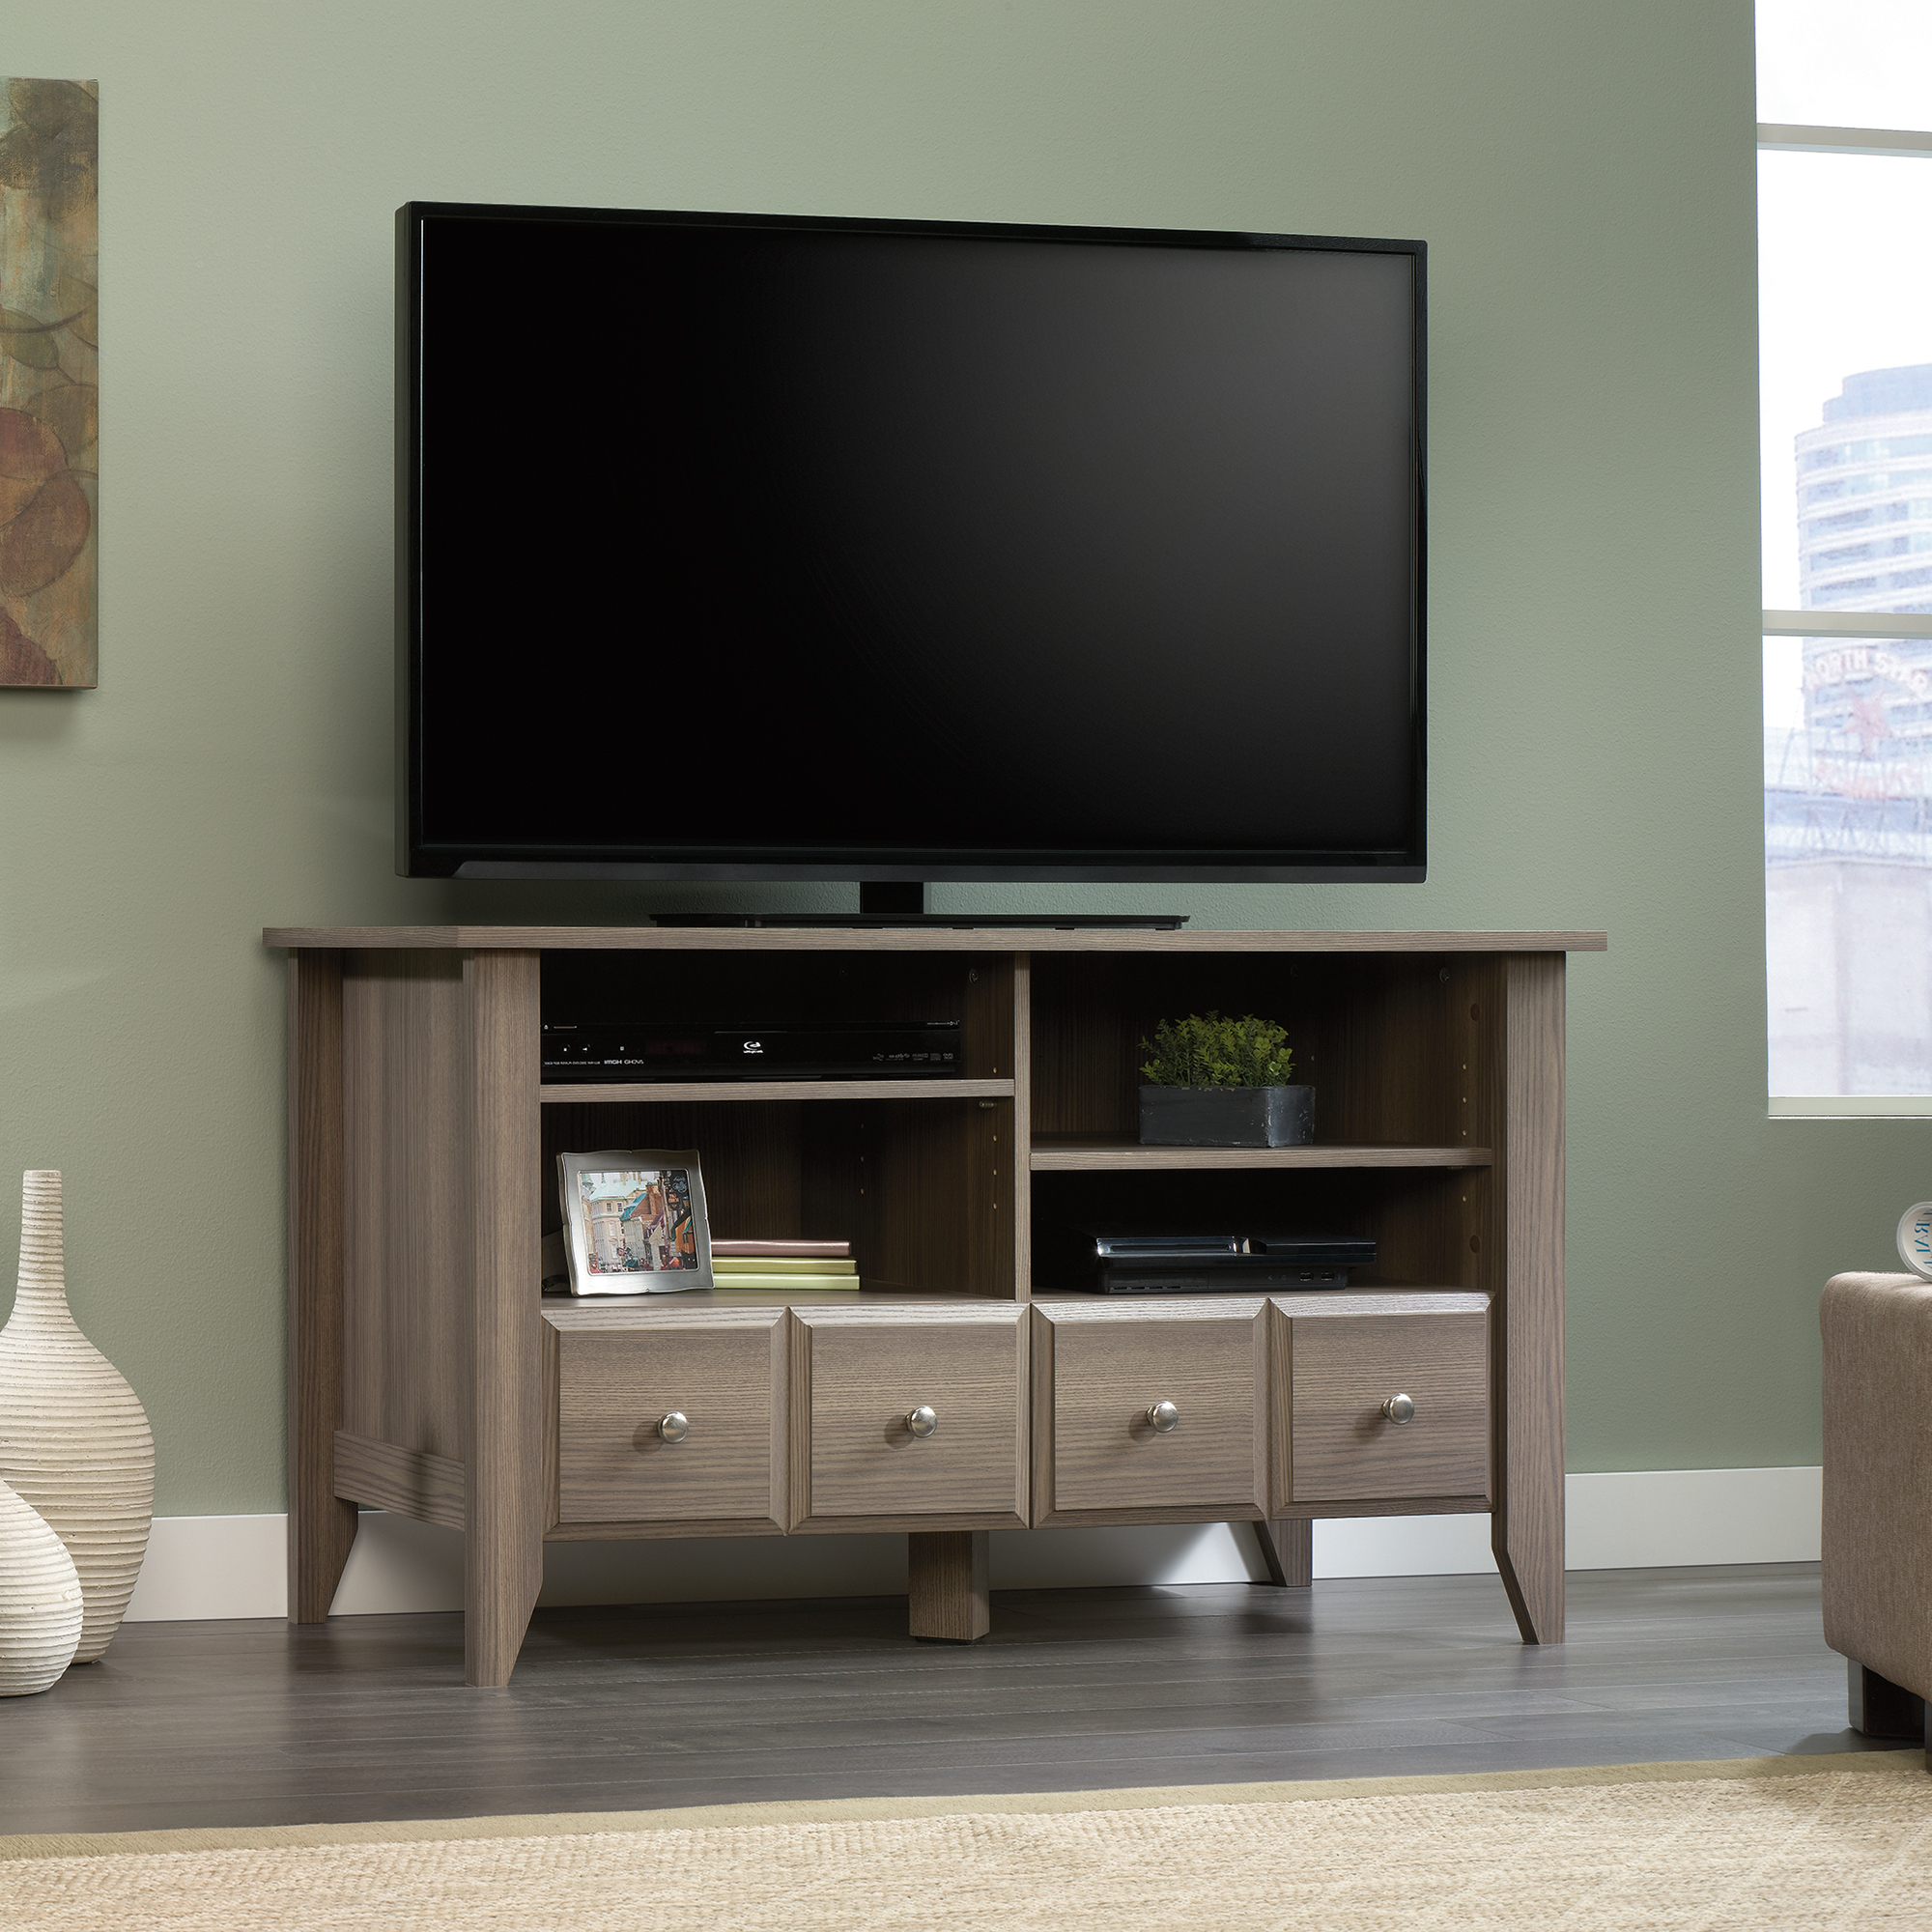 Sauder Within Tv Cabinets With Storage (View 14 of 20)